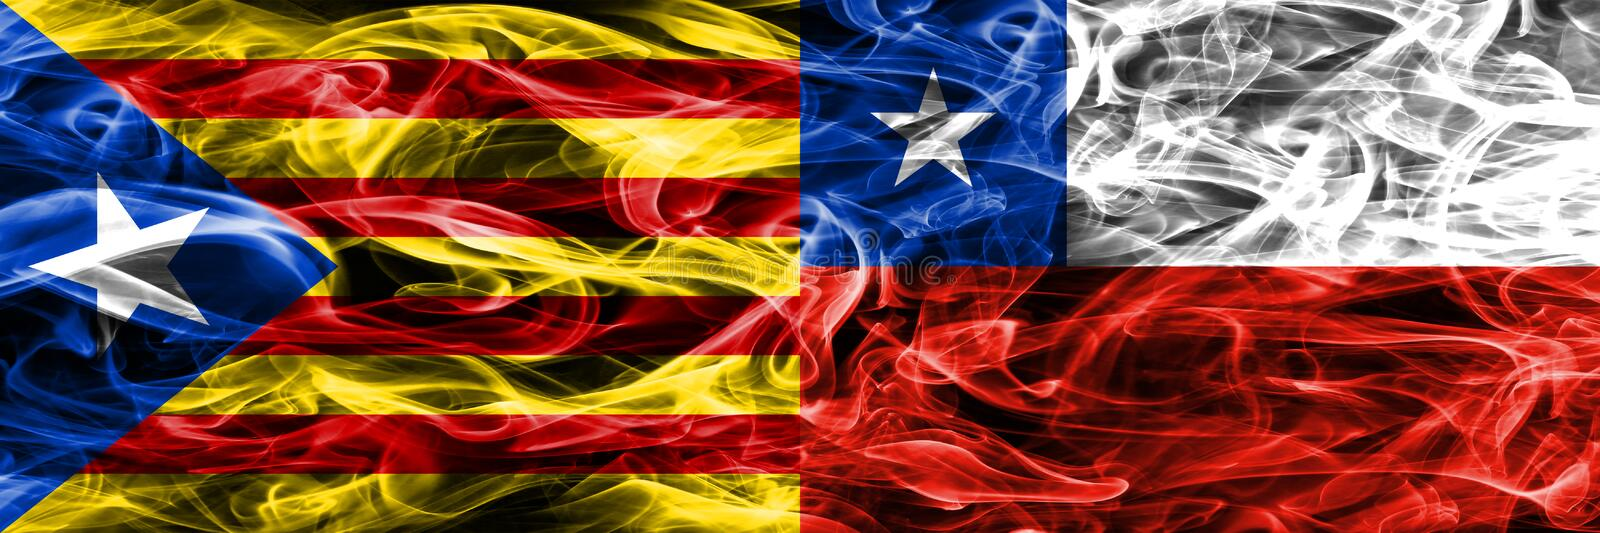 Catalonia vs Chile copy smoke flags placed side by side. Thick colored silky smoke flags of Catalan and Chile copy.  stock illustration